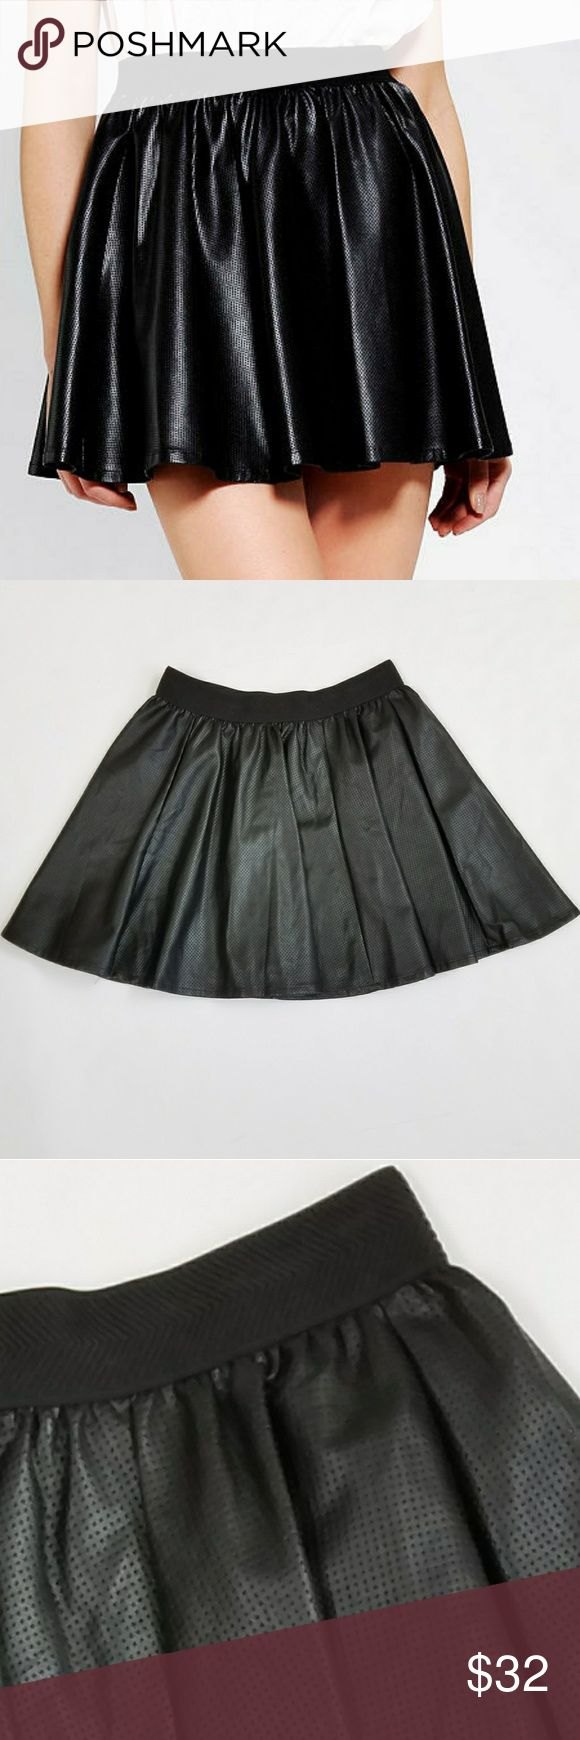 Silence + Noise Vegan Leather Skater Skirt sz S From Urban Outfitters Silent + Noise Perfotated Vegan Leather Skater Skirt Sz S. Like New condition. Lined. Elastic waistband Perforated vegan leather Machine washable Waist:13 inch laying flat Length: 16 inch silence + noise Skirts Mini